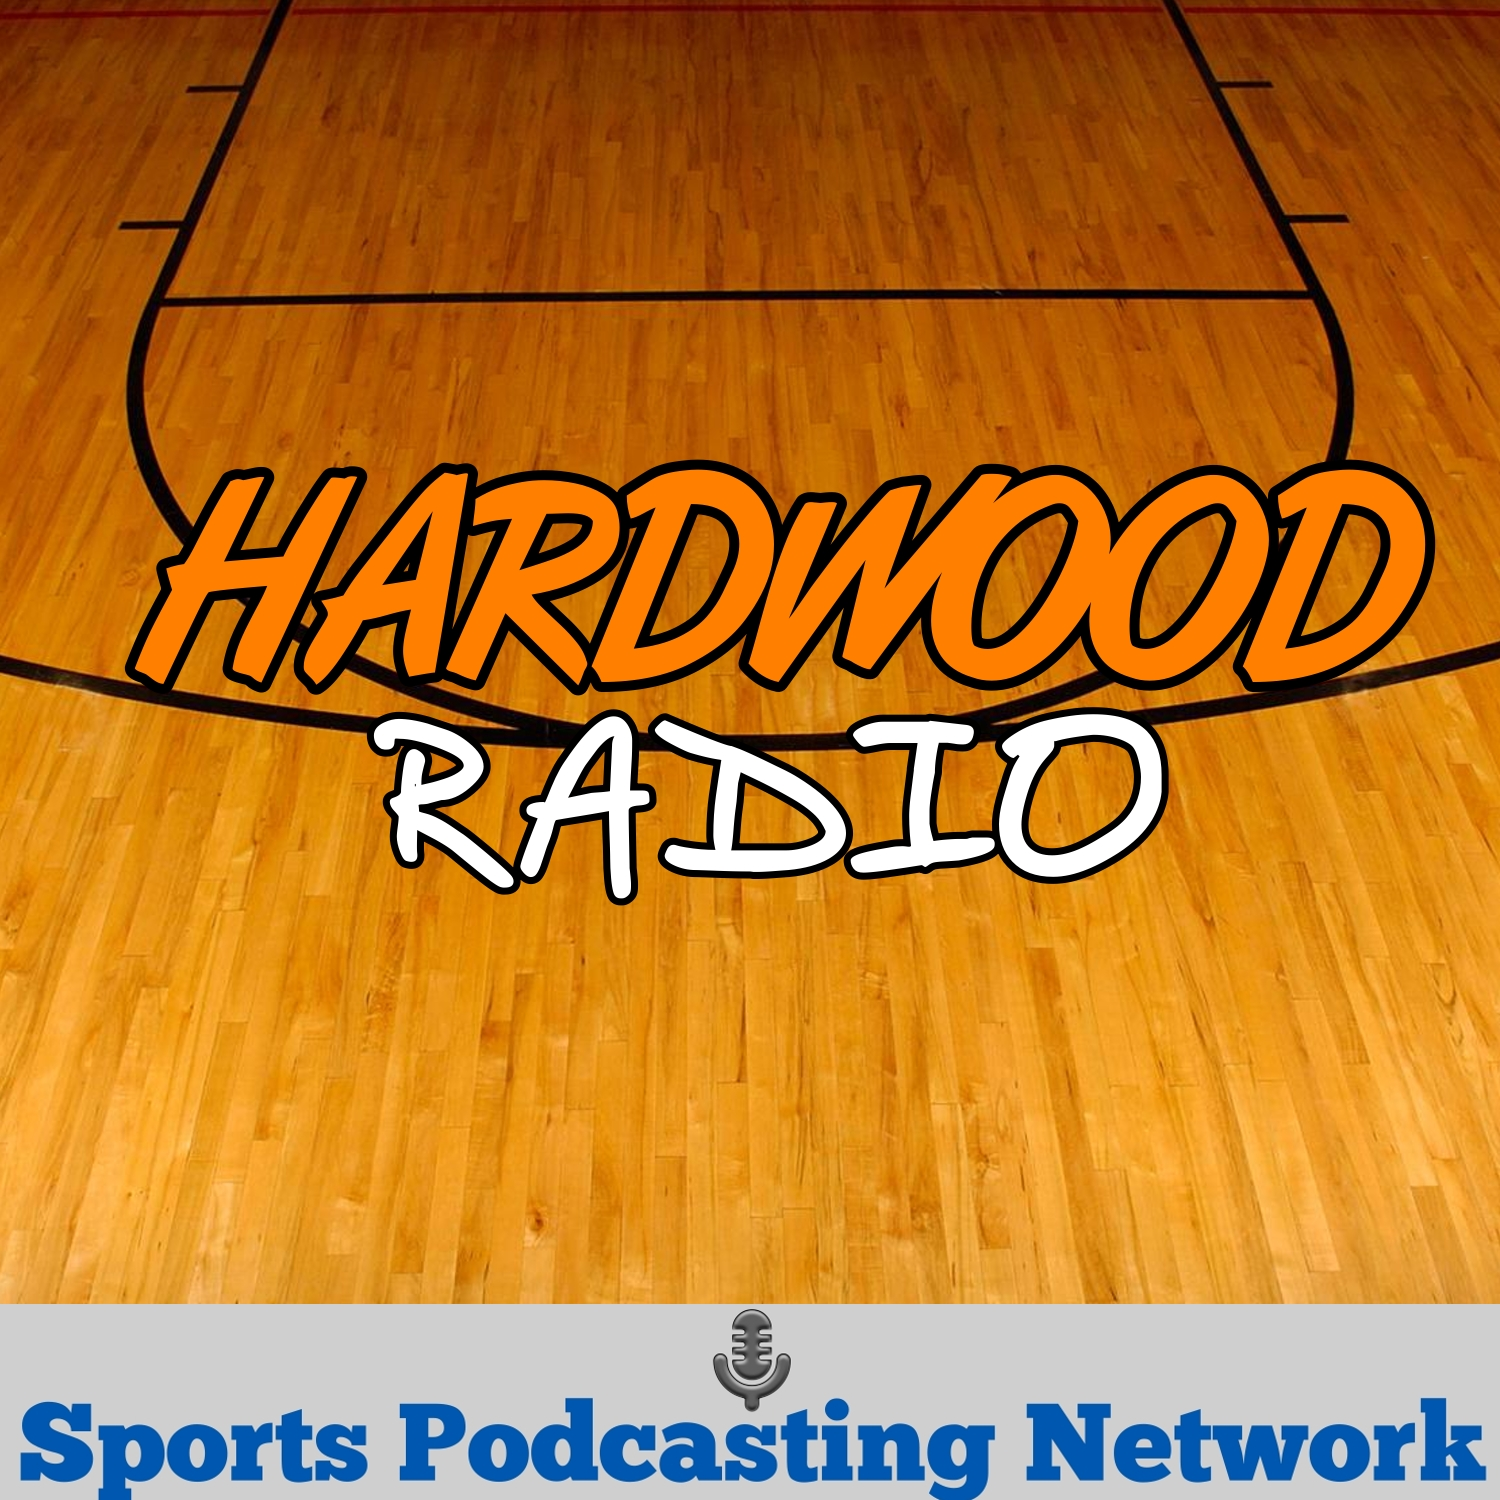 Hardwood Radio – Sports Podcasting Network